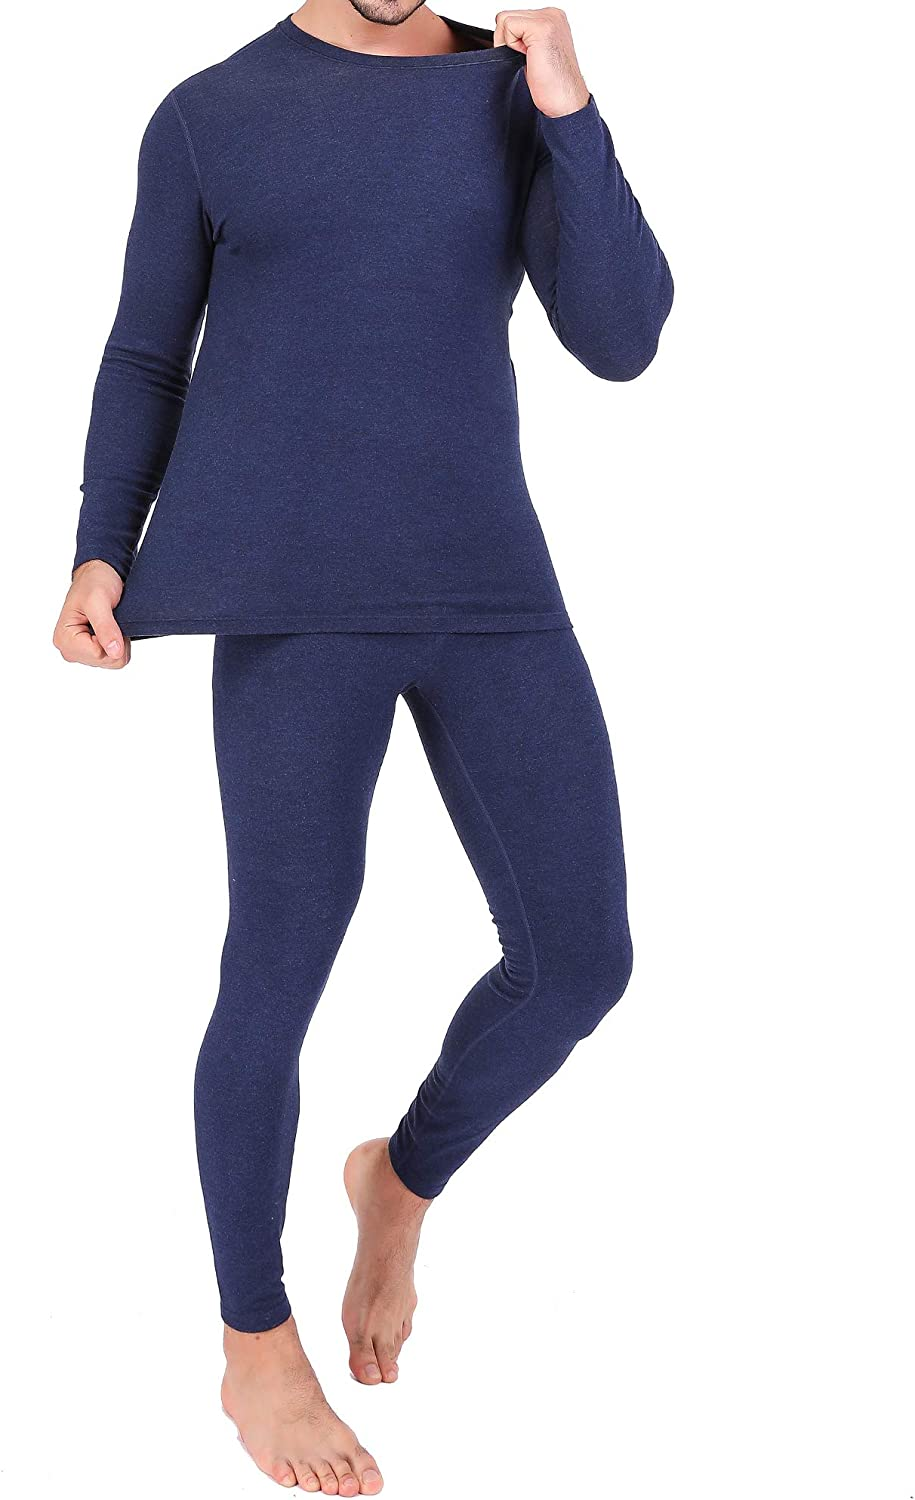 Ginasy Thermal Underwear for Men Soft Long Johns Top and Bottom Set Base Layer for Cold Weather